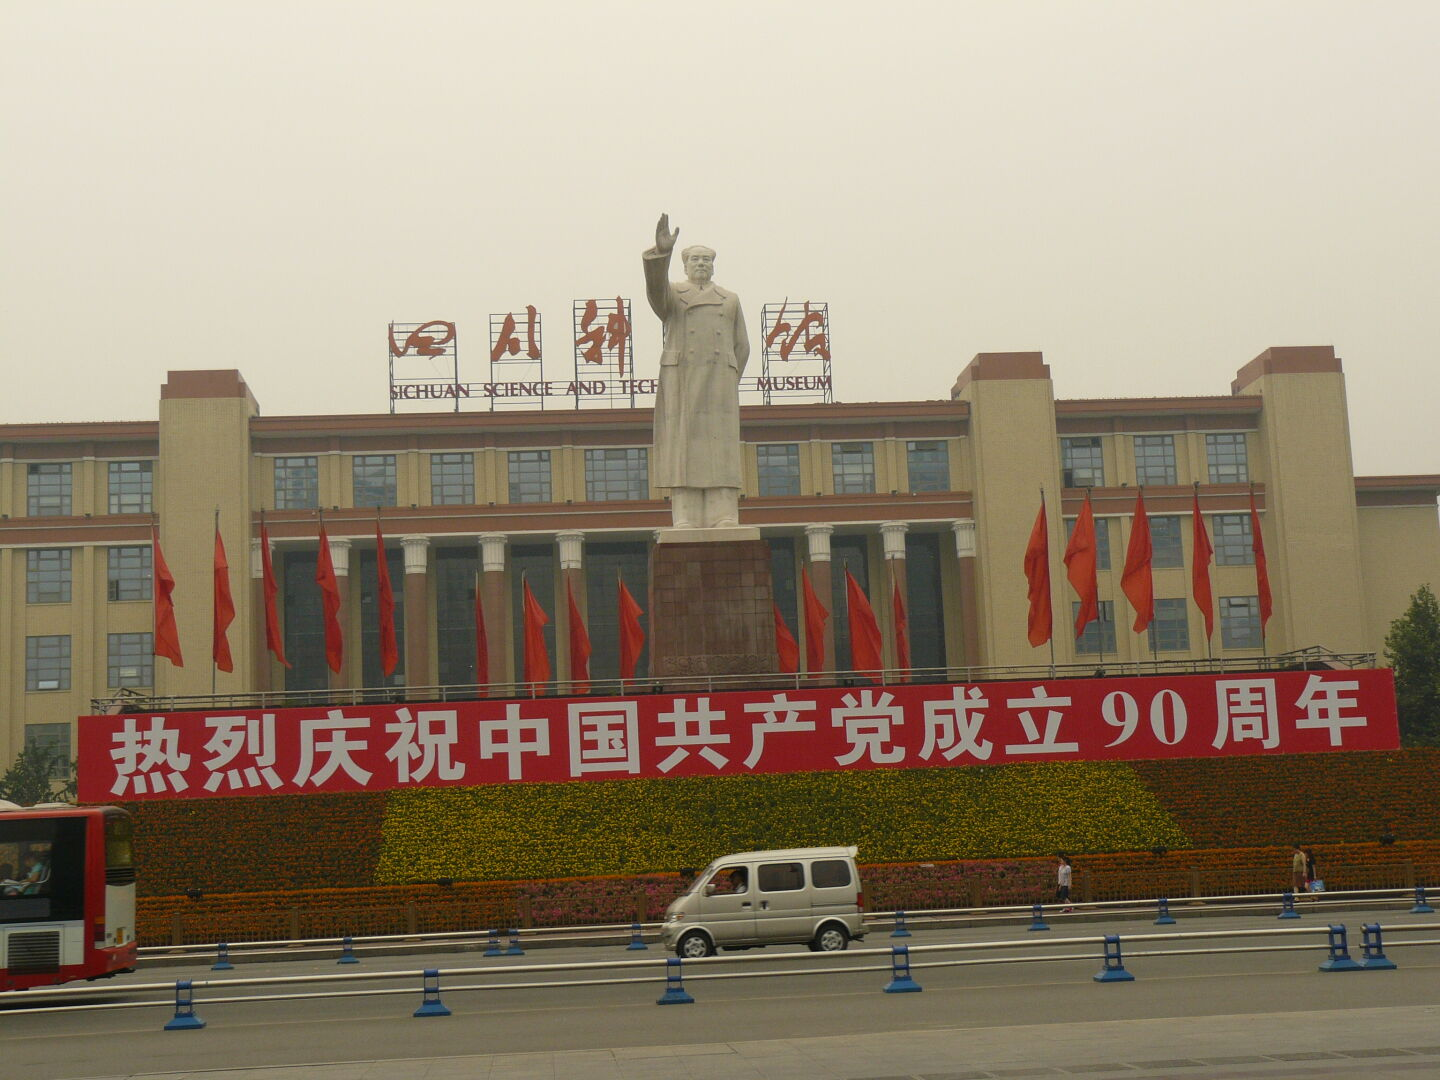 Many people had photos taken of themselves in front of the Mao statue.